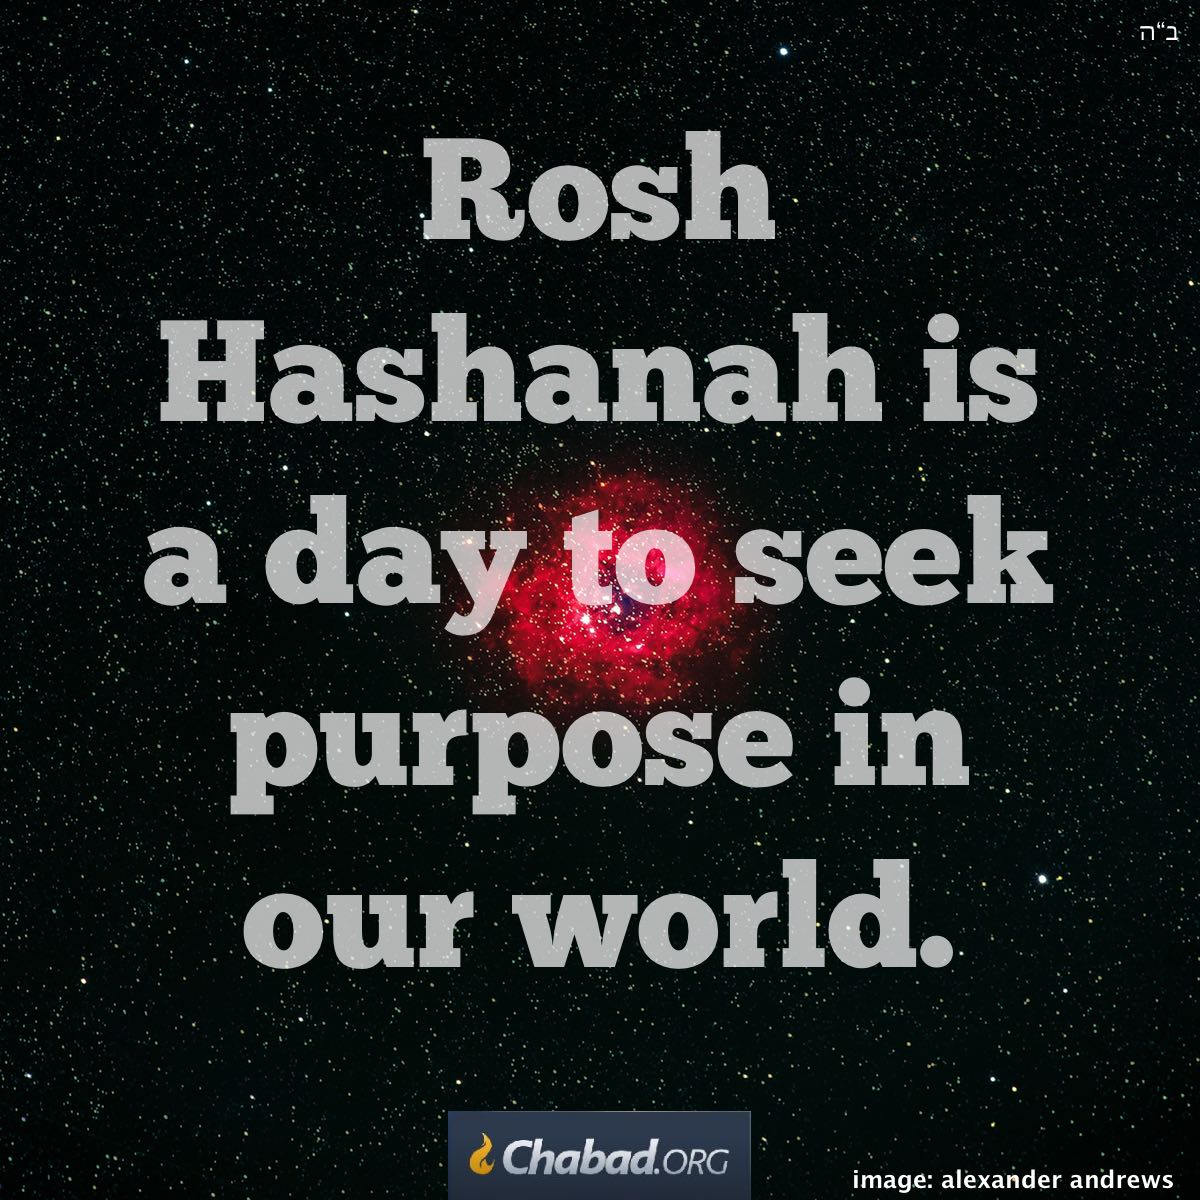 18 Empowering Contemplations For Rosh Hashanah Thinking About What